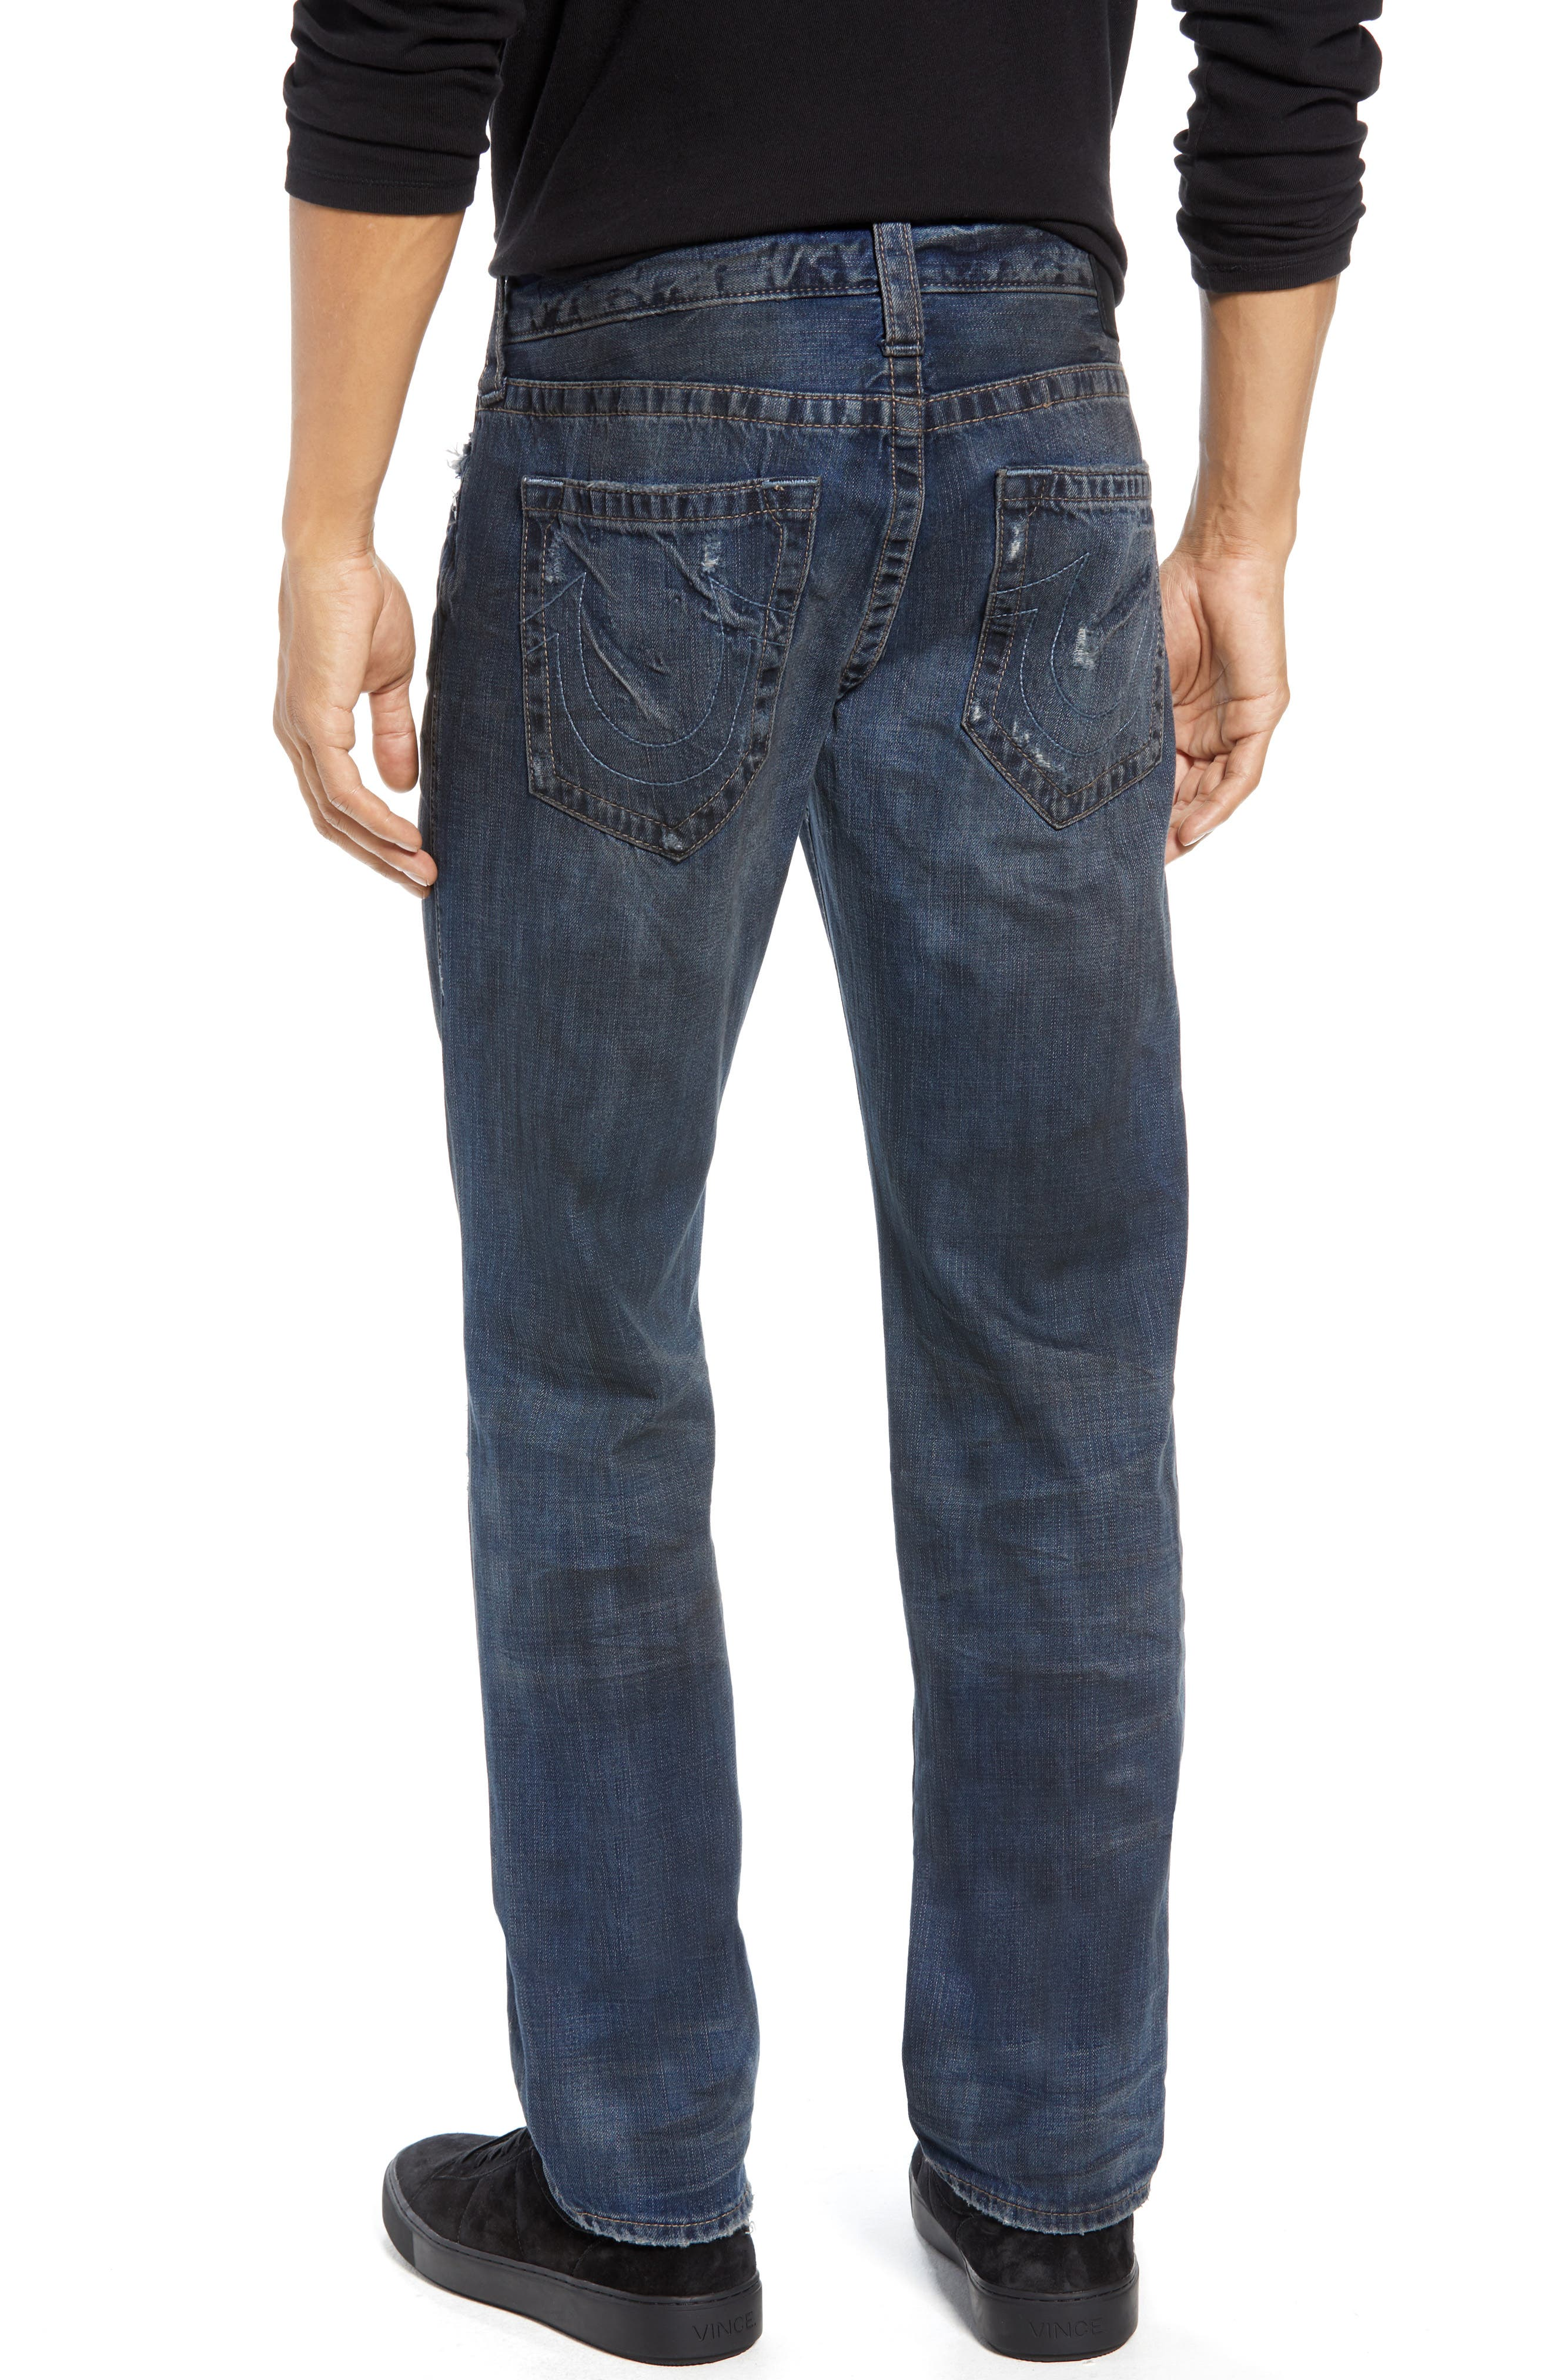 Rocco Distressed Skinny Fit Jeans,                             Alternate thumbnail 2, color,                             MIDNIGHT STORM